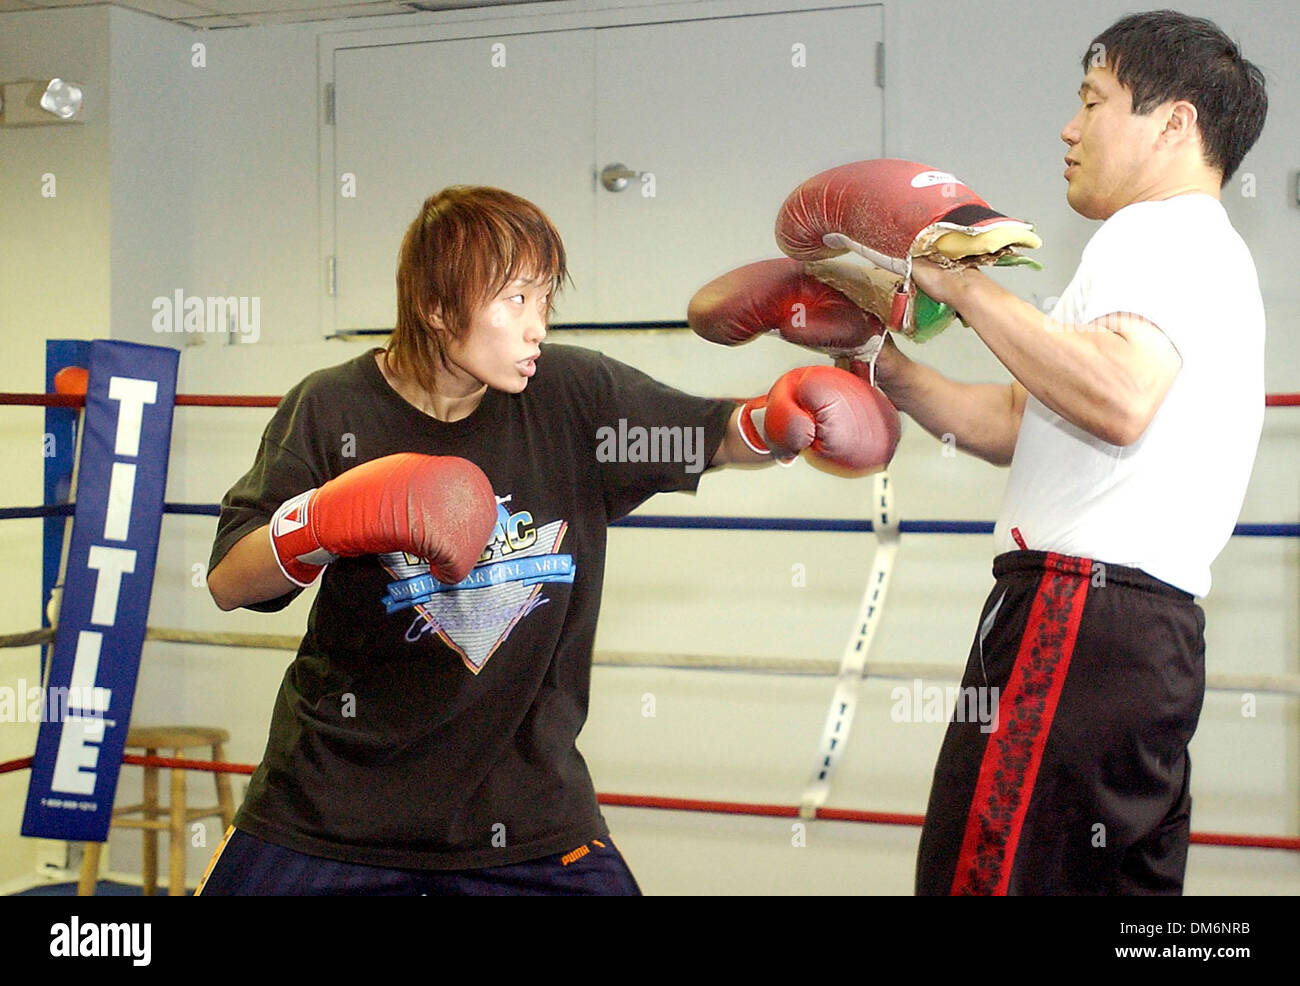 Aug 16, 2005; San Antonio, TX, USA; Sachiyo Shibata gets in a short workout with her trainer Masahiro Hada, on Tuesday August 15, 2005 at the Family Fitness Center on S.W. Military. Shibata, of Japan, is in town this week, set to fight San Antonio's Maribel Zurita Friday in a women's world title bout at Municipal Auditorium.  Mandatory Credit: Photo by Helen L. Montoya/San Antonio  - Stock Image